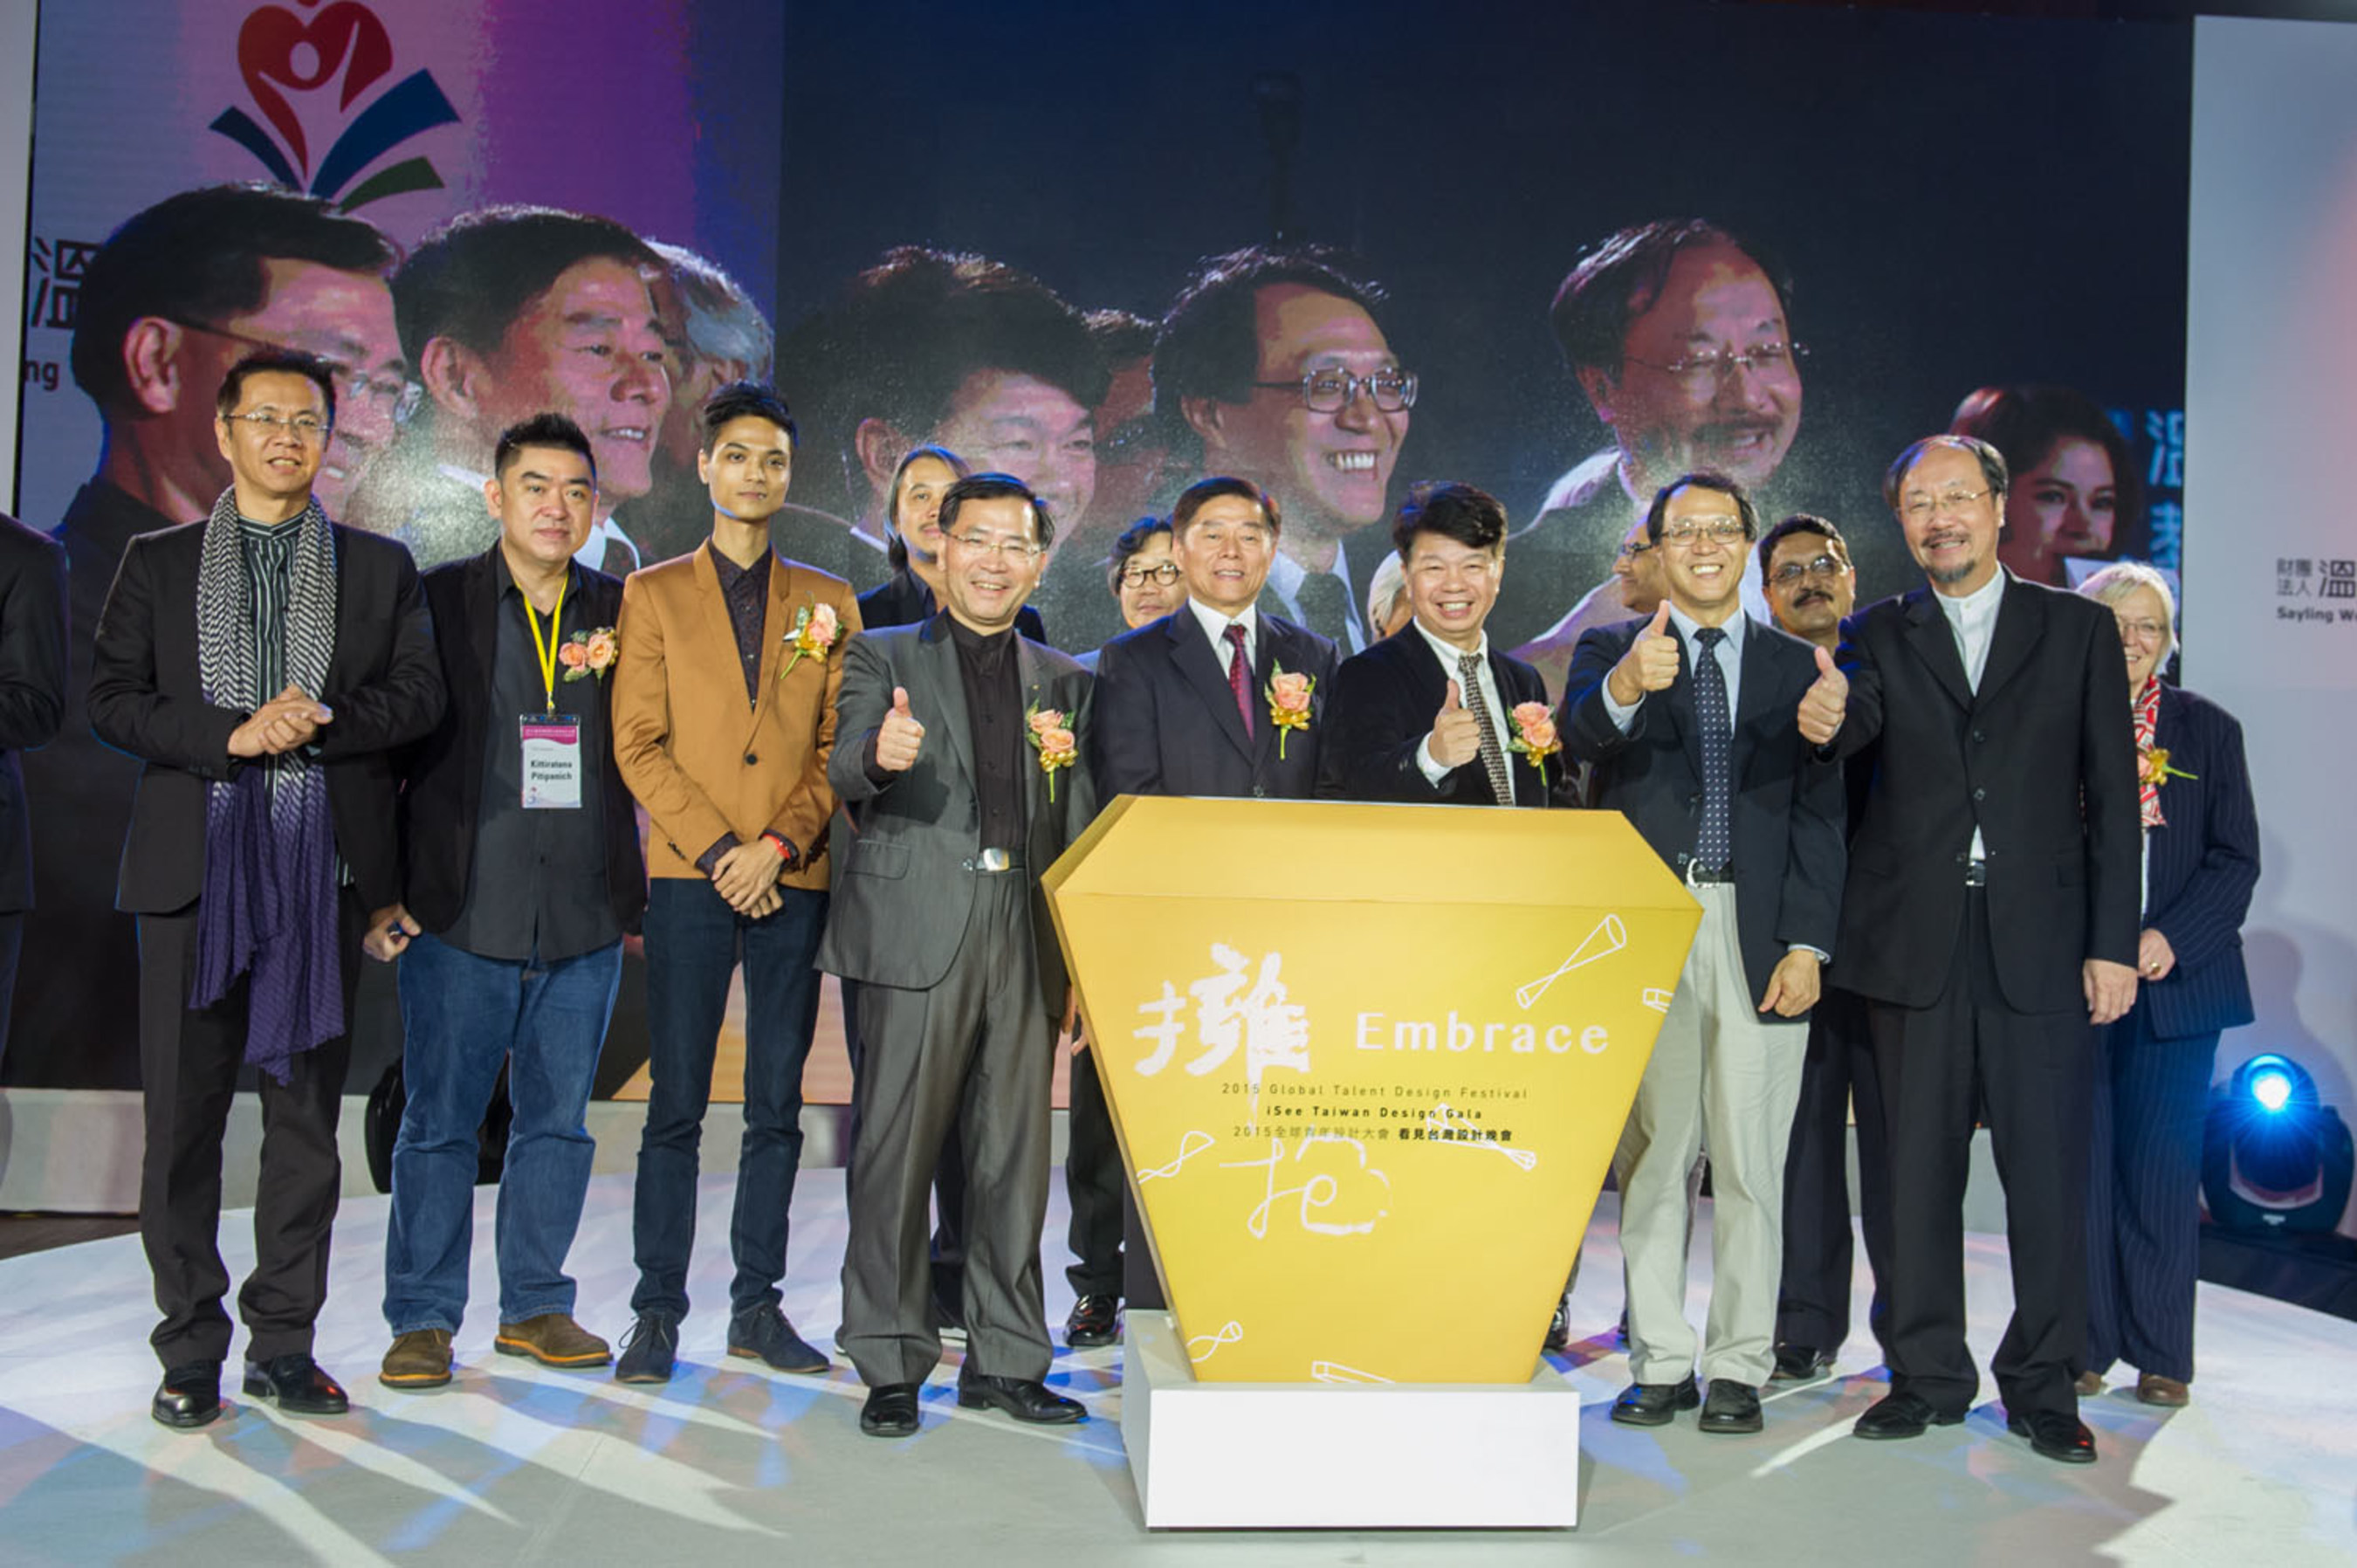 Nearly 300 Young Design Talents around the World Joined to 'Embrace - iSee Taiwan'